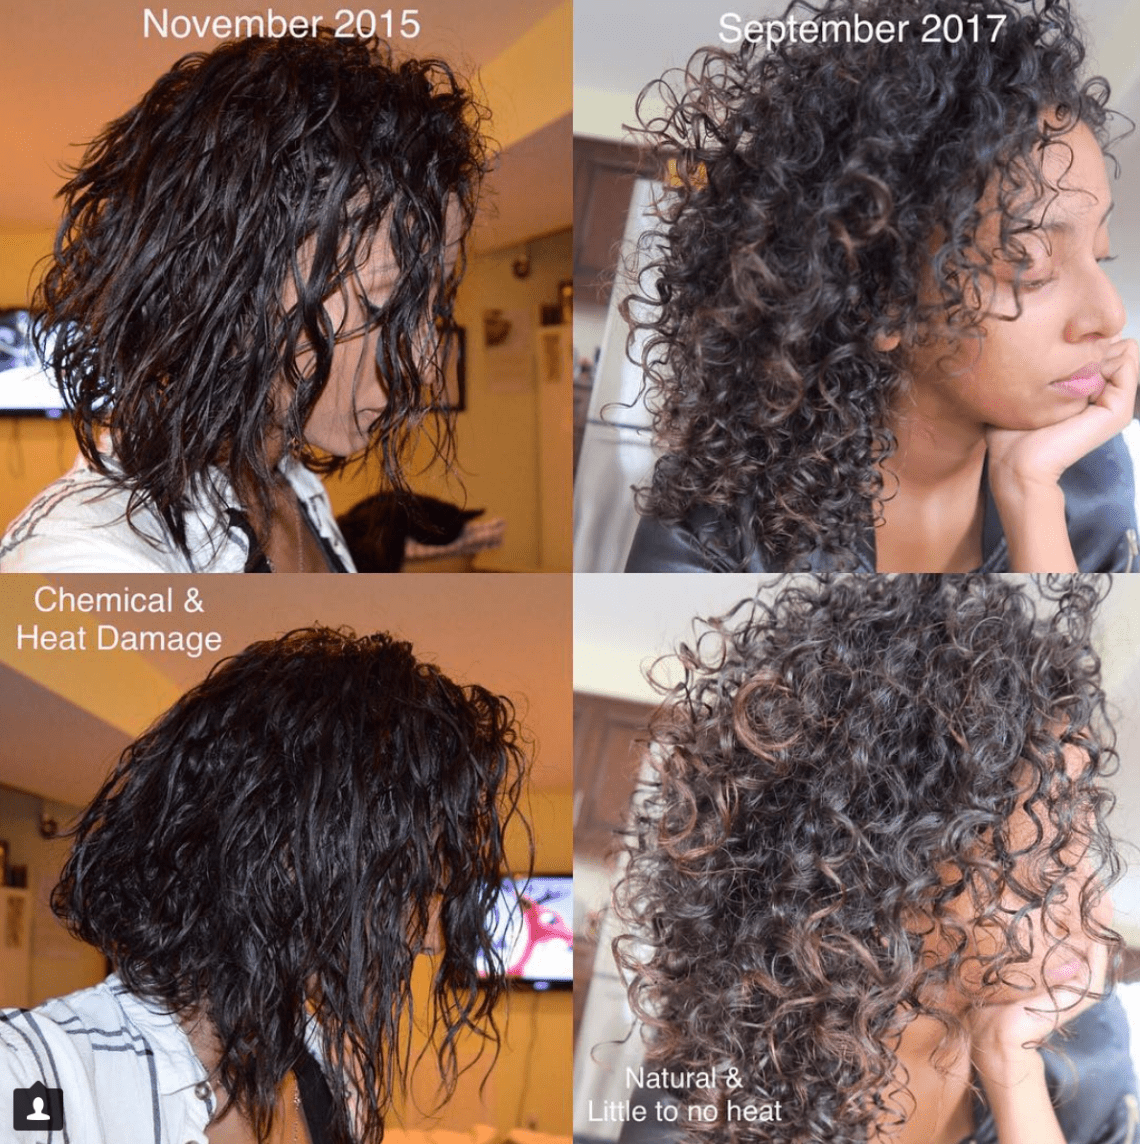 How To Properly Care For Damaged Curls Nette S Scrapbook Damaged Curly Hair Relaxer For Curly Hair Curly Hair Styles